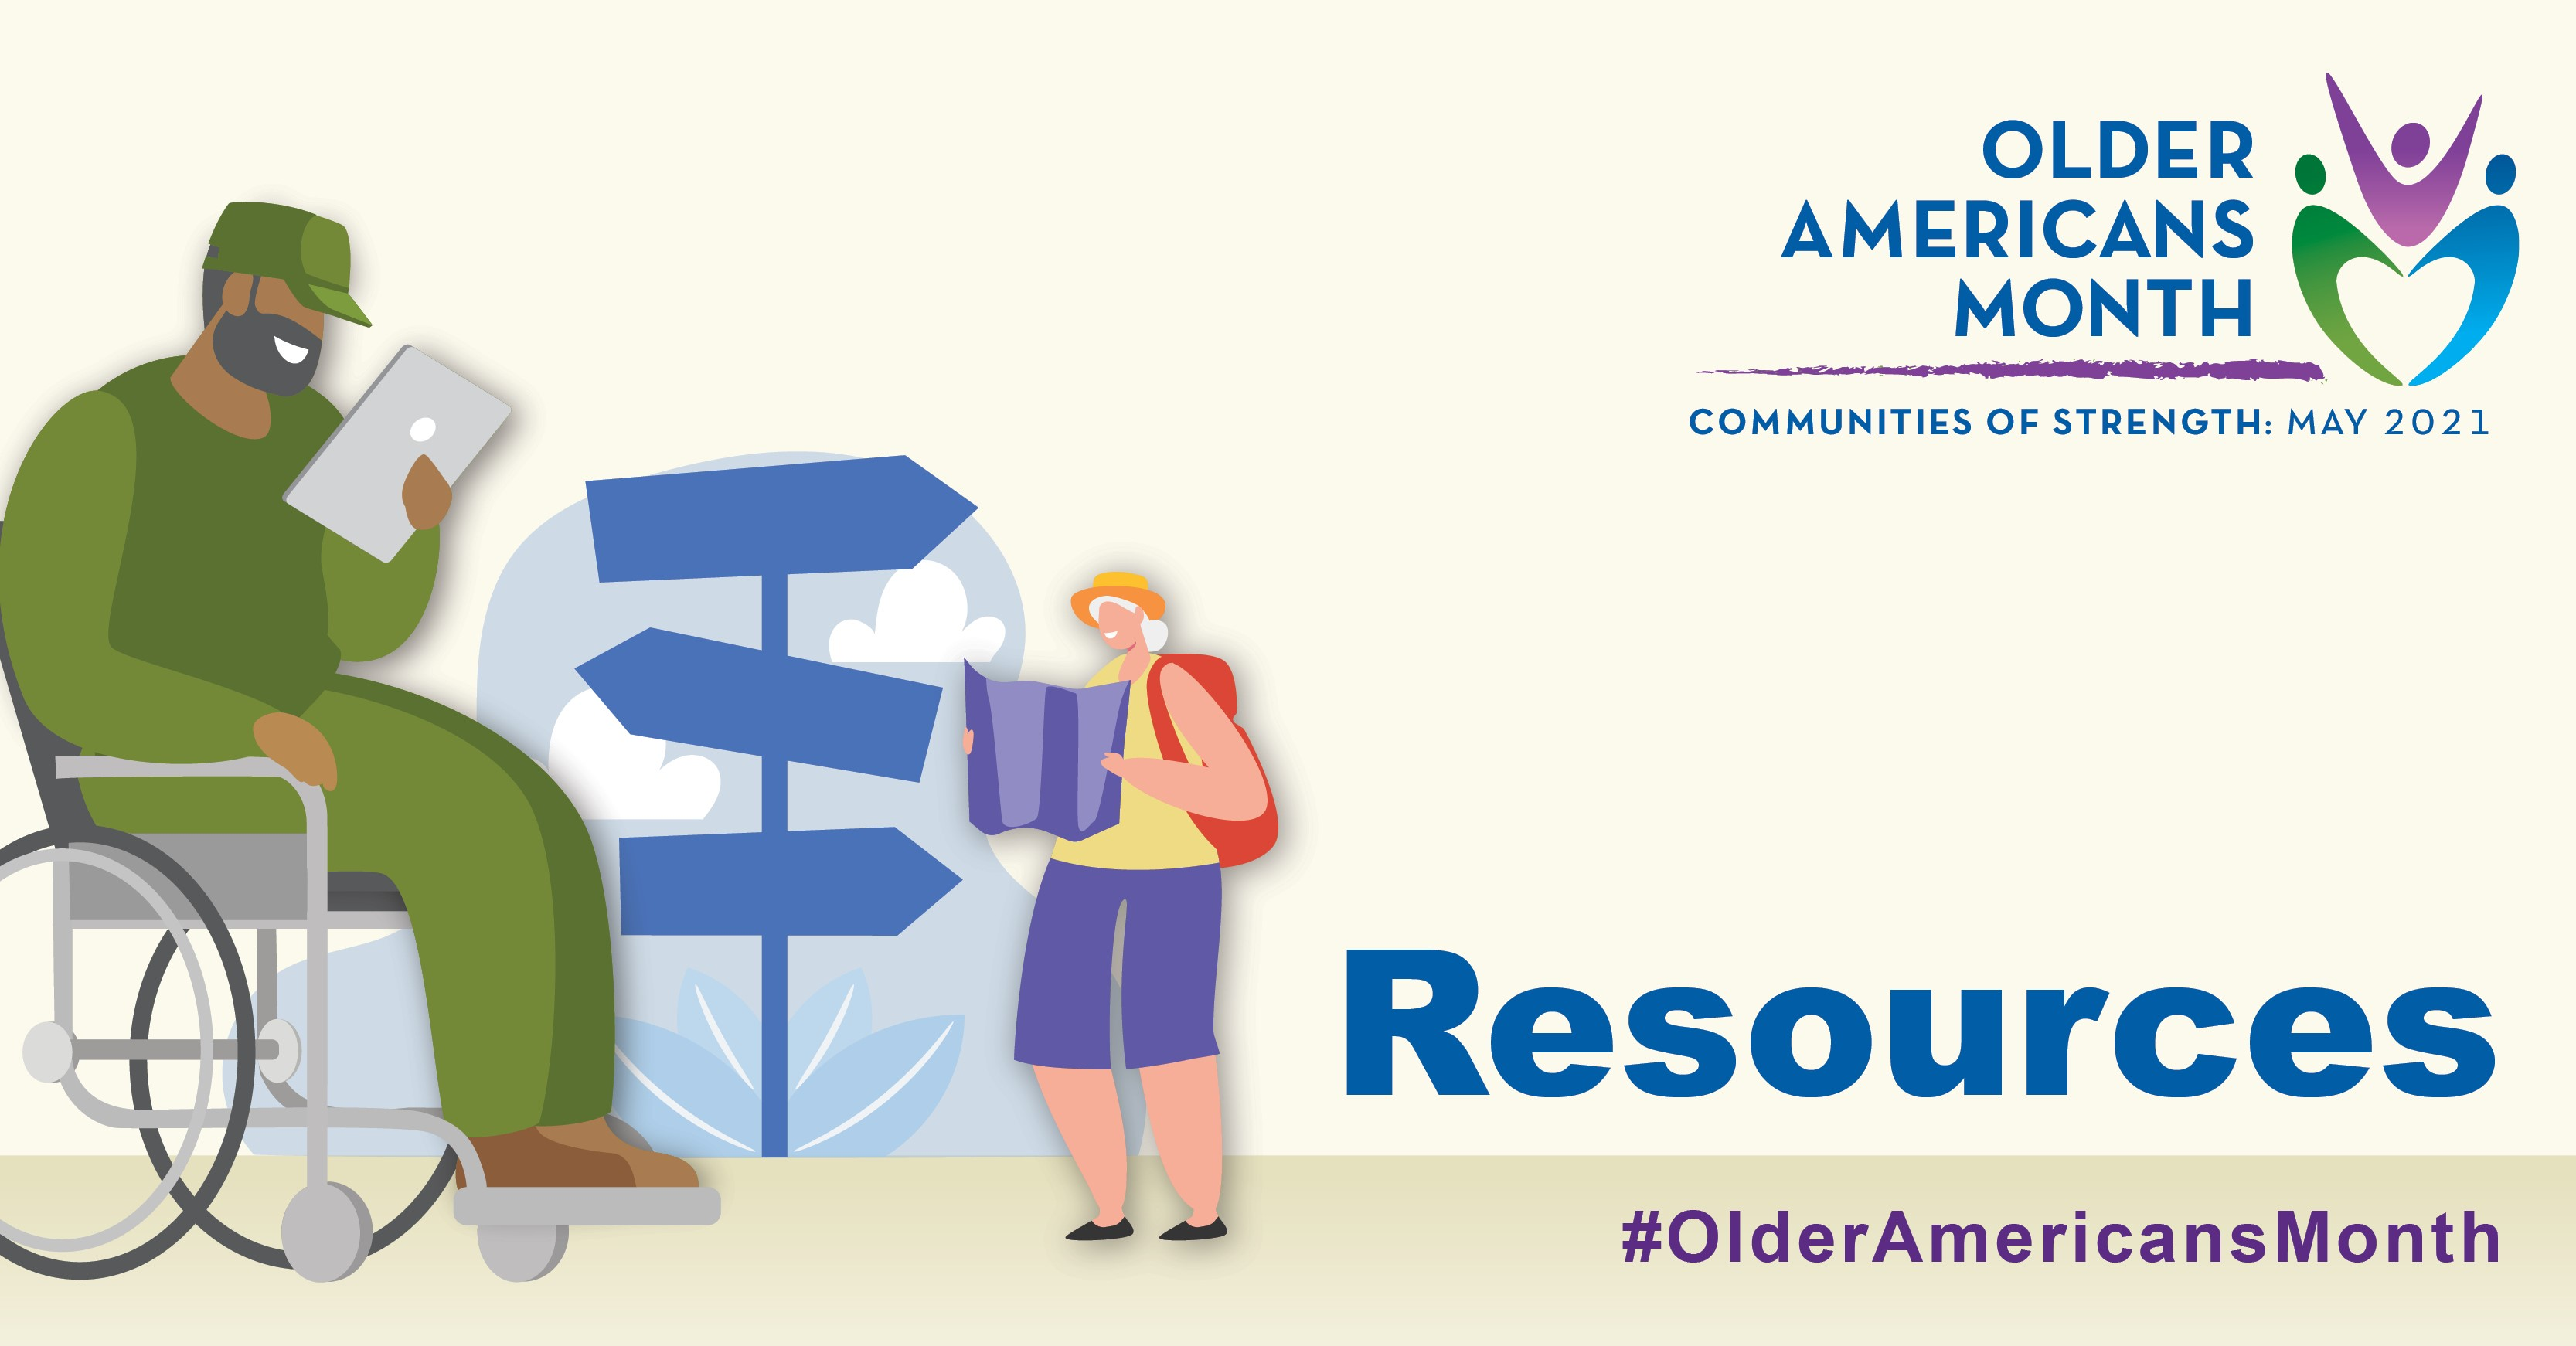 Social Media Graphic: Older Americans Month, Communities of Strength: May 2021. Resources #OlderAmericansMonth